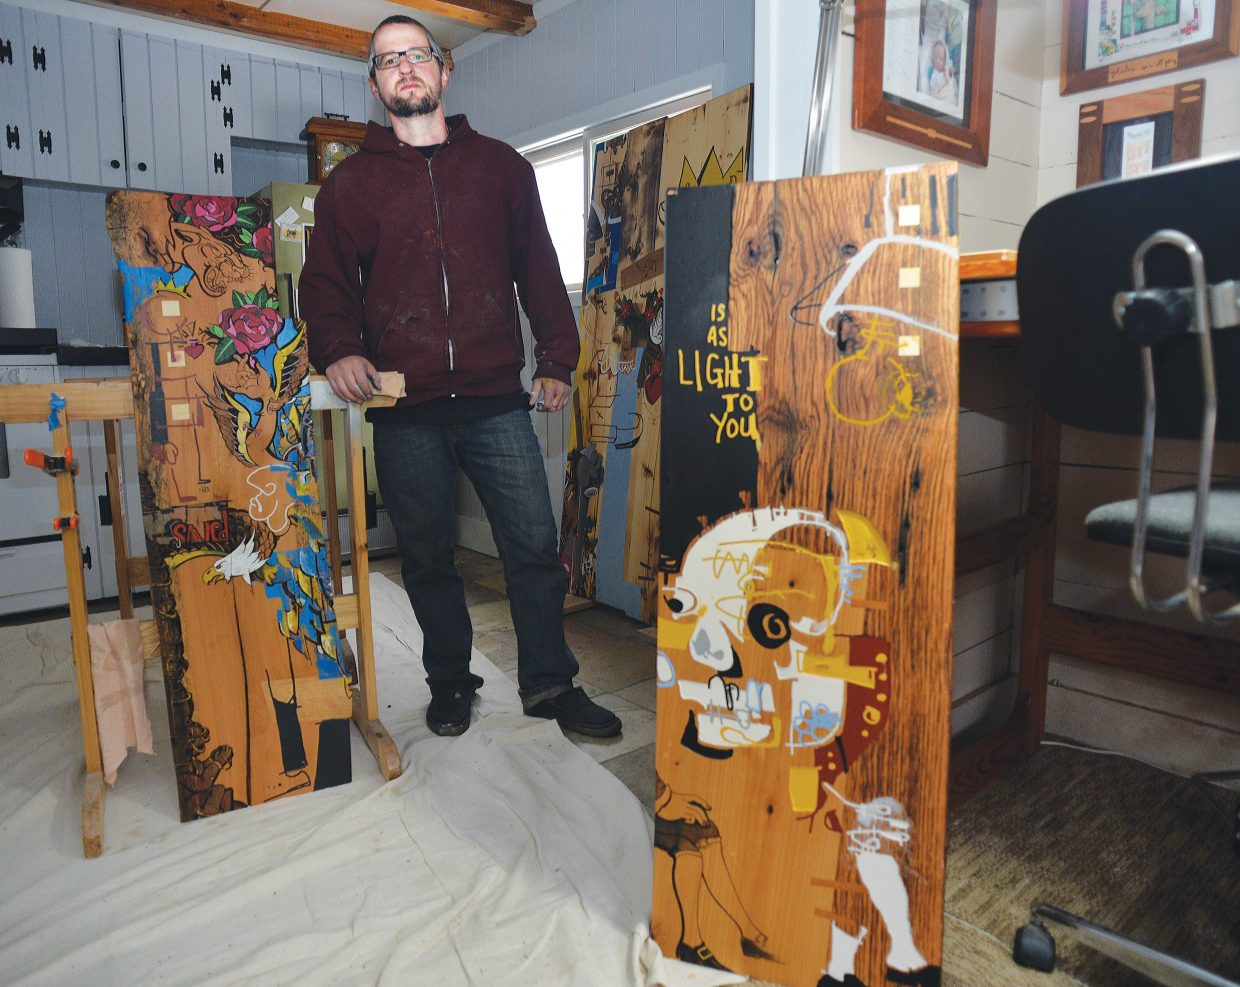 Local artist Brian Leach stands with his art in his downtown home. Leach, who is a carpenter by trade and makes furniture, has expanded his horizons into the world of art. He used a wood burner, paint and stains to create his unique works of art.